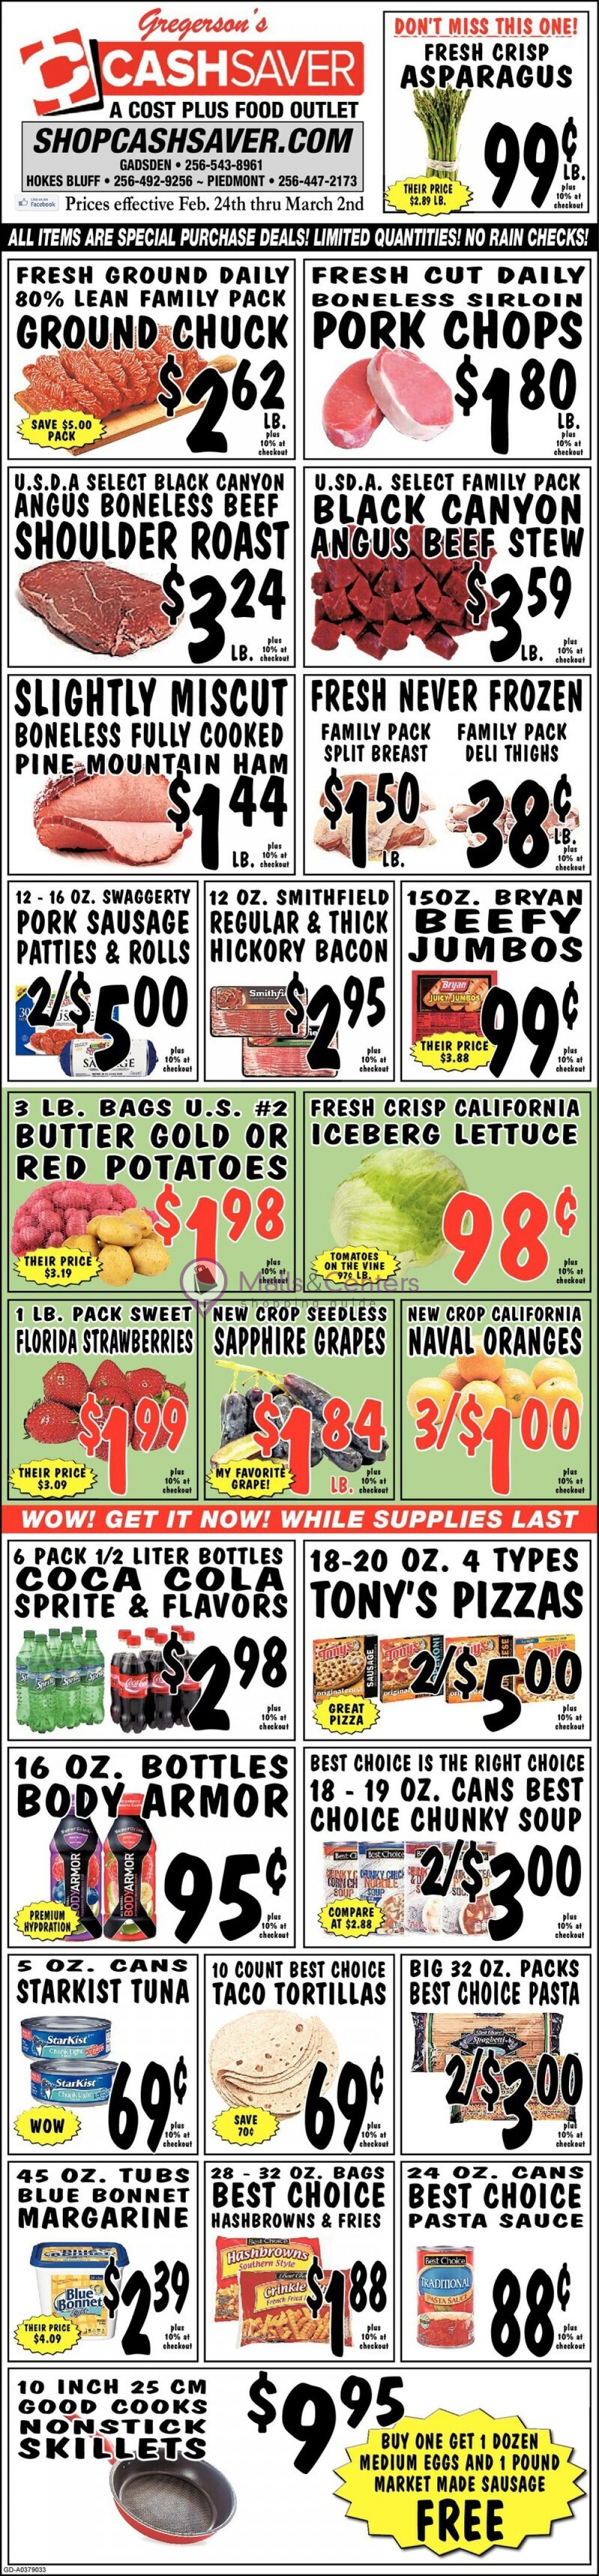 weekly ads Shop Cash Saver - page 1 - mallscenters.com